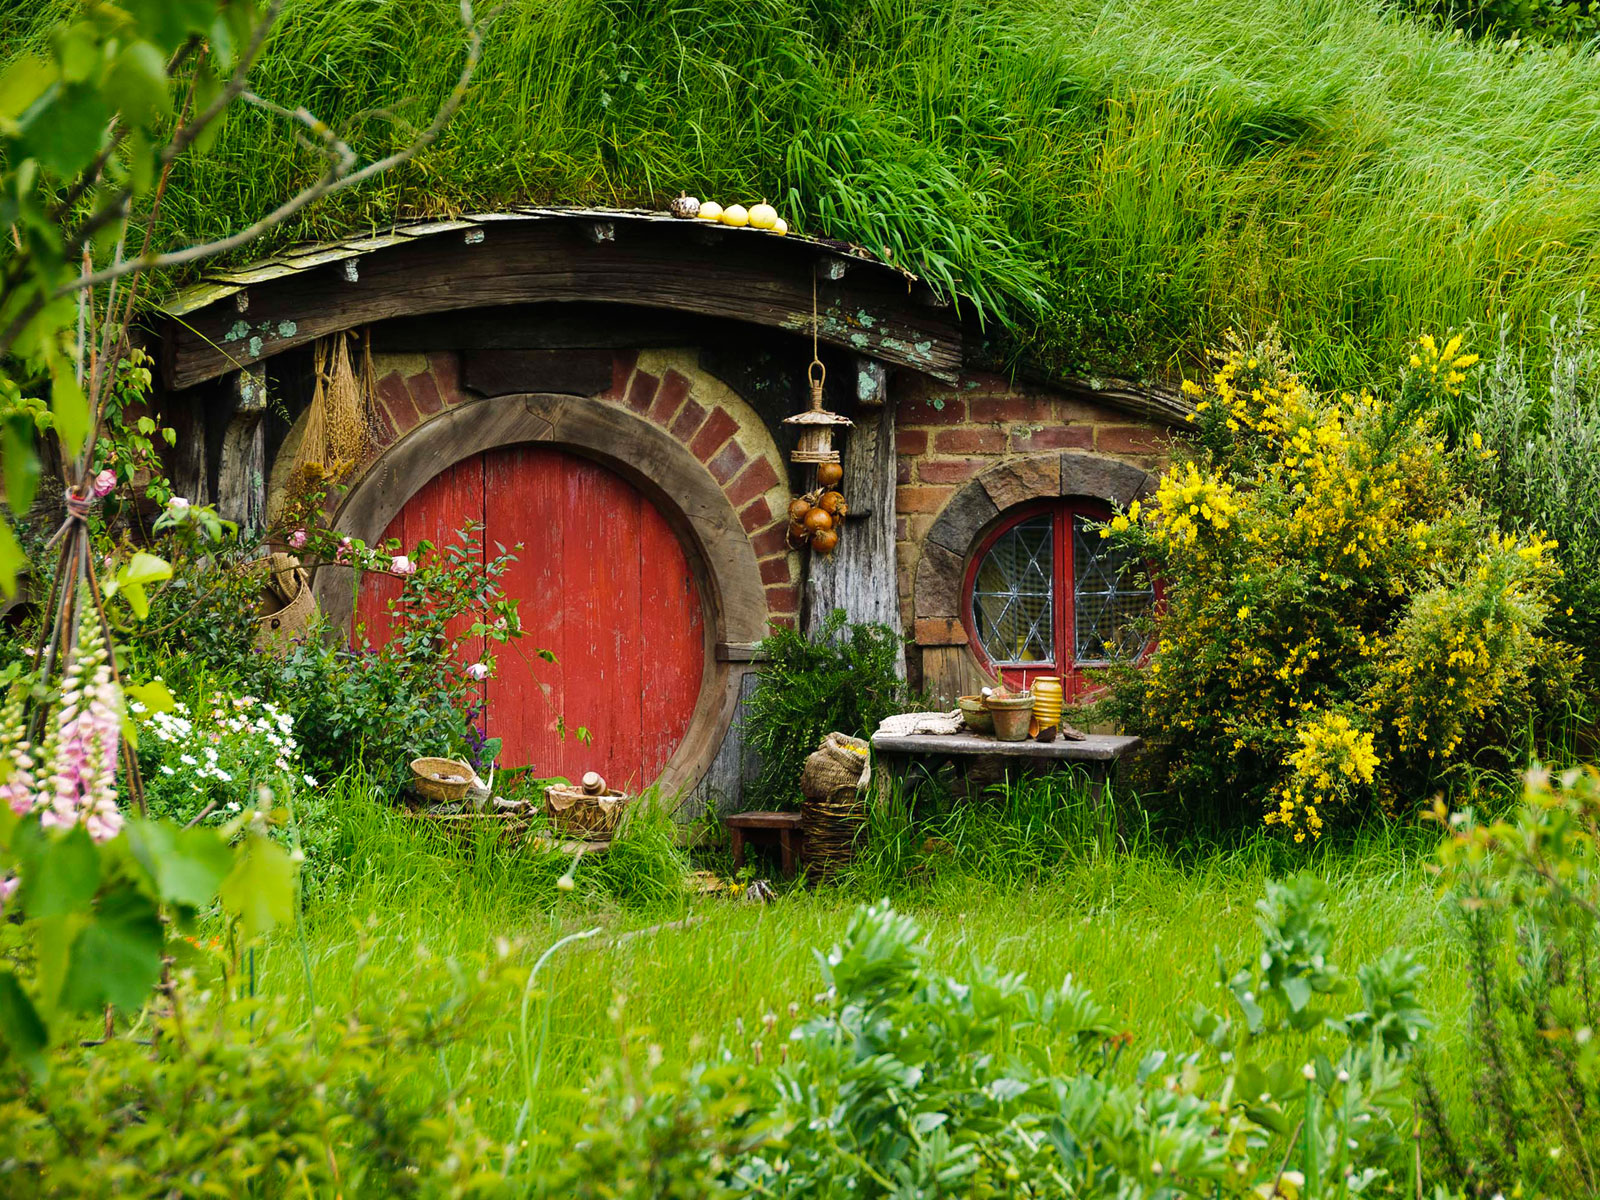 hobbit-hole-red-1600x1200.jpg